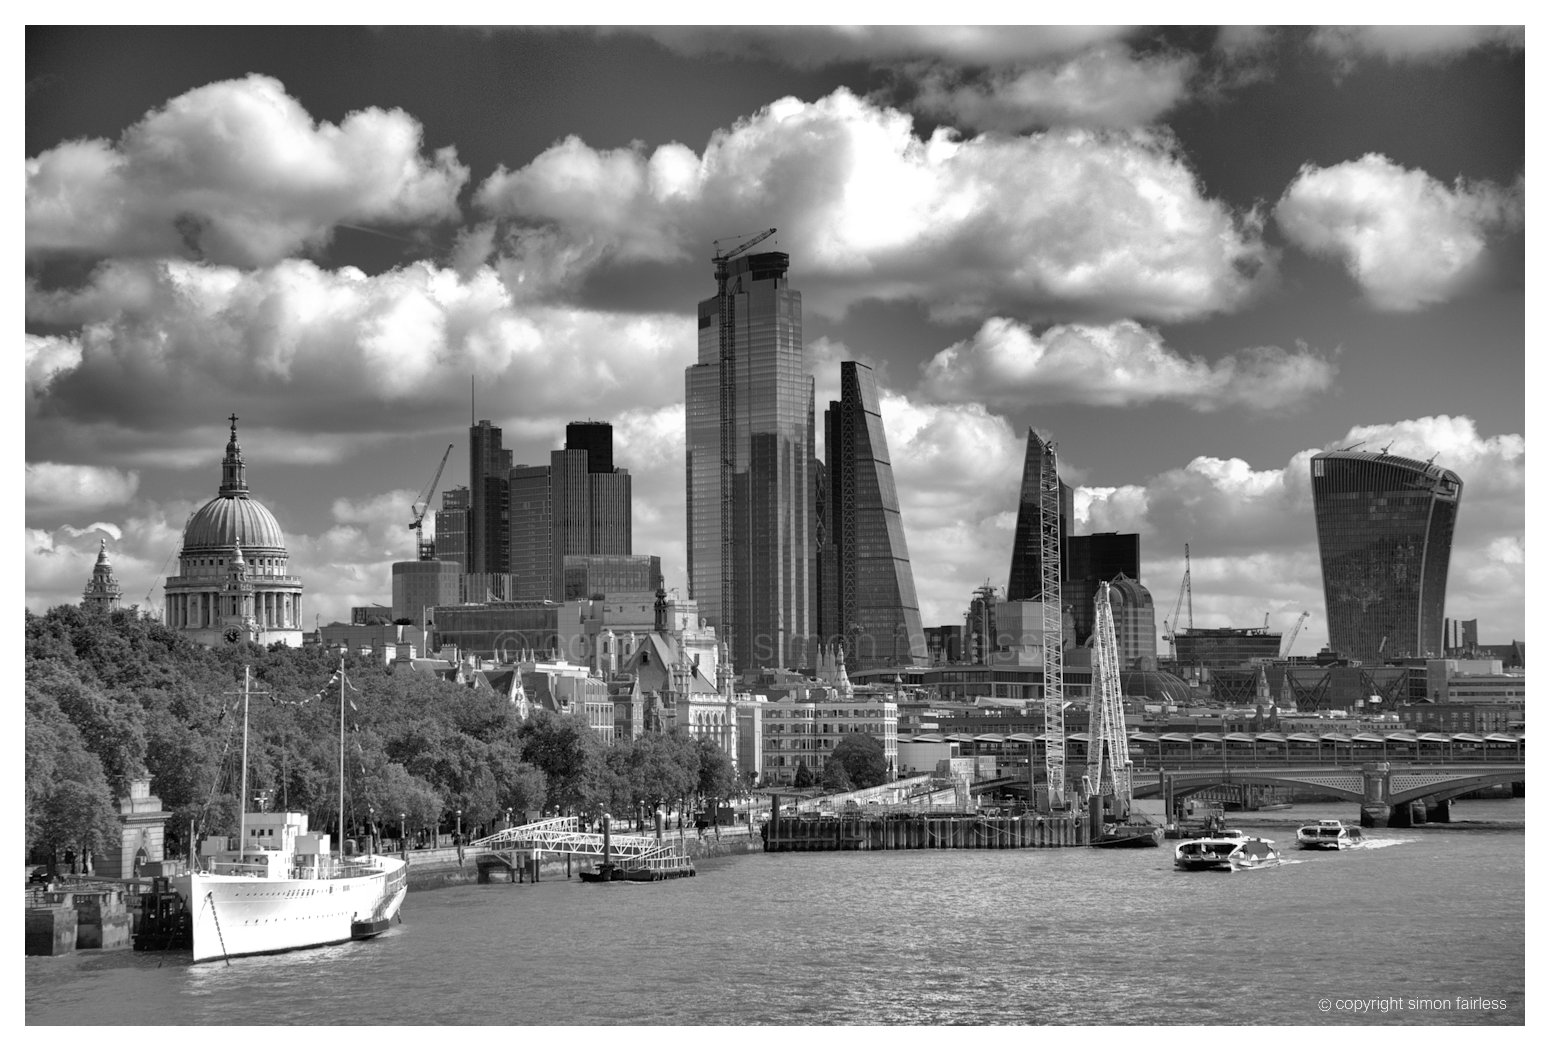 Image of the City London